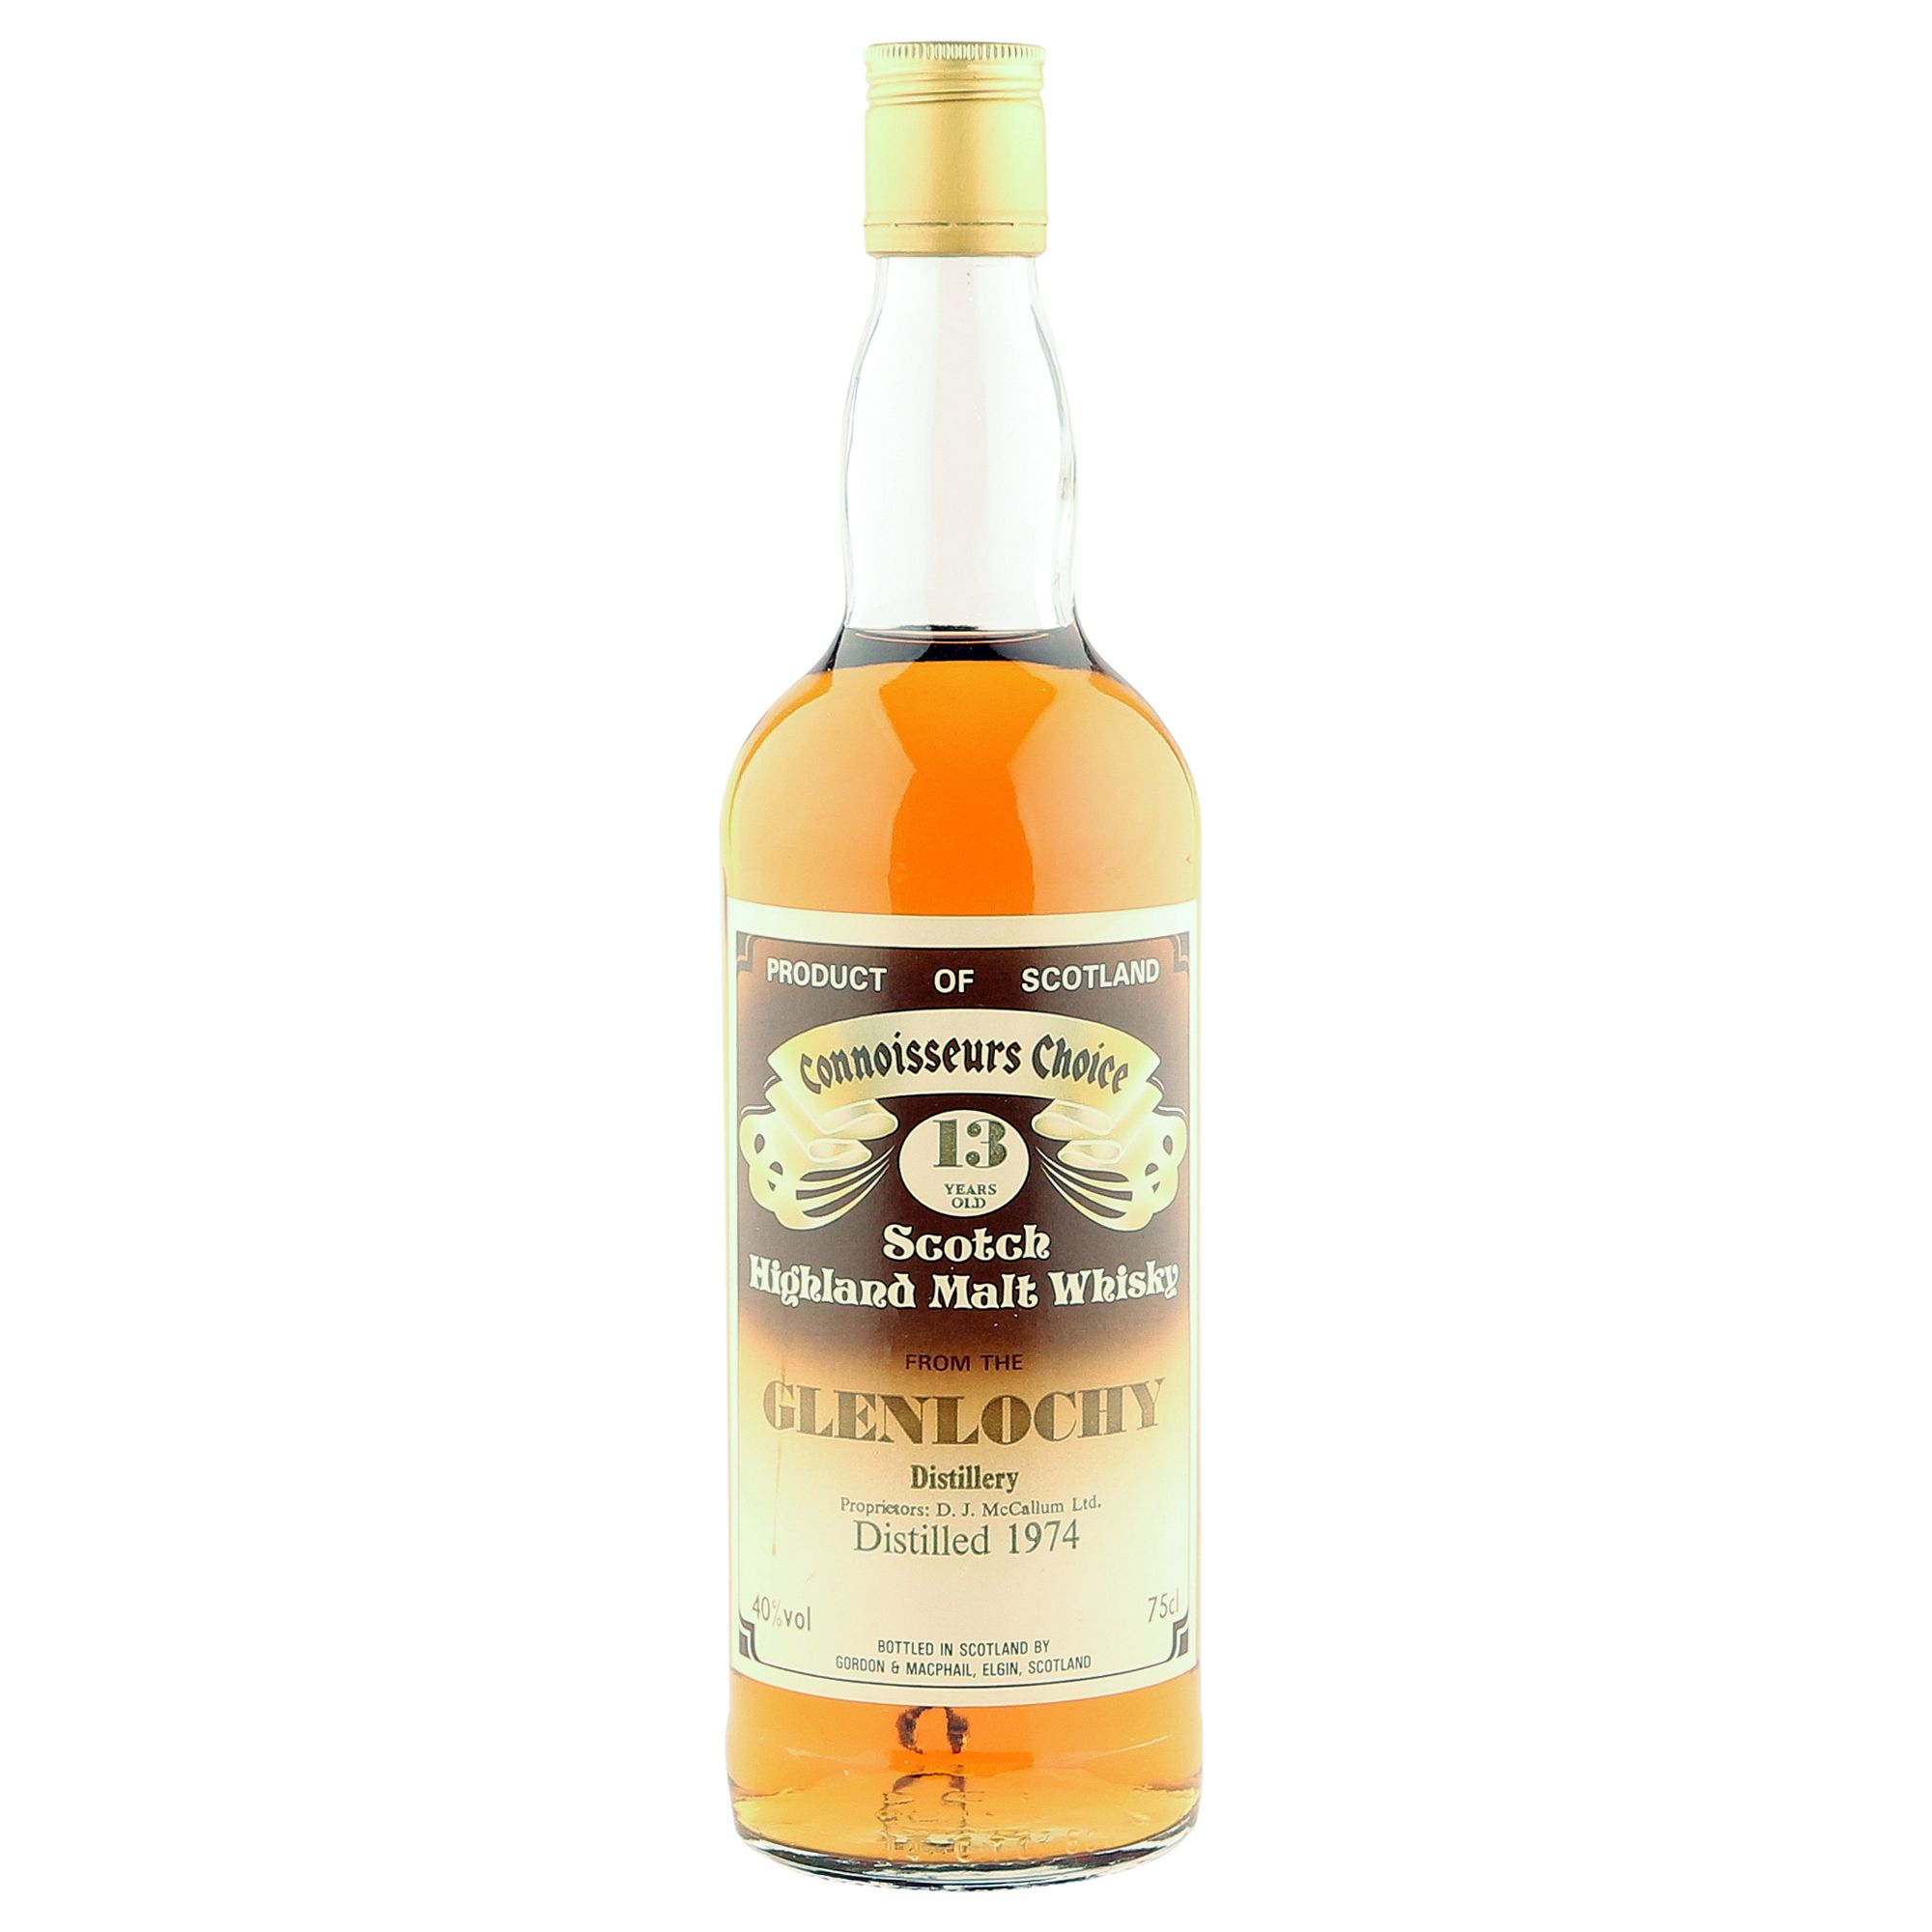 Glenlochy 1974 13 Year Old, Gordon & MacPhail Connoisseurs Choice